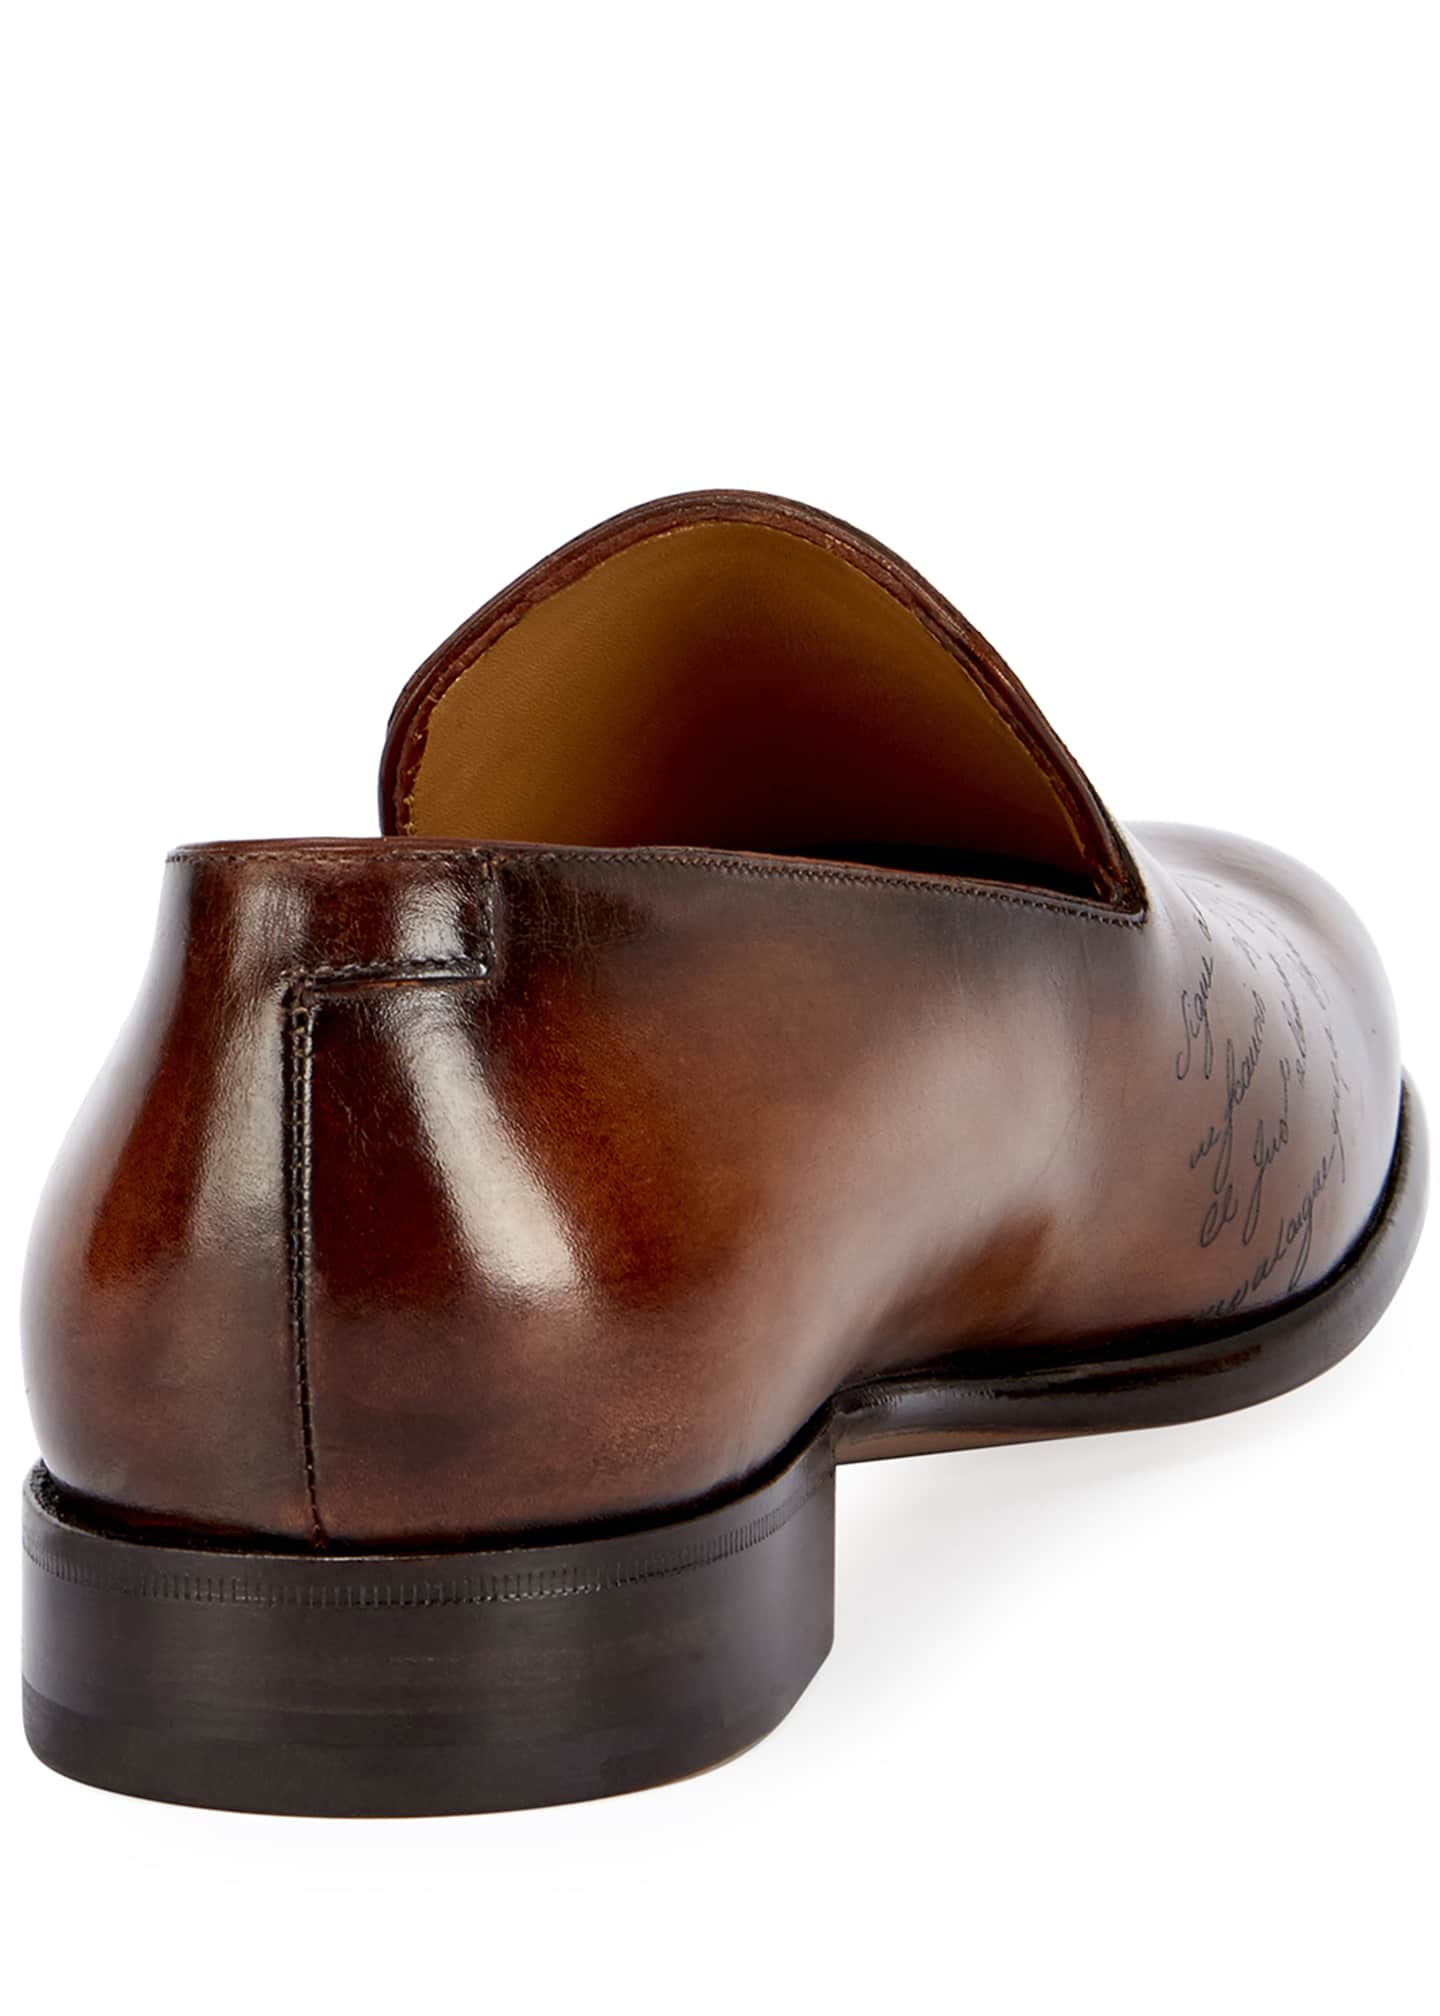 Image 3 of 3: Scritto Leather Slip-On Dress Shoe